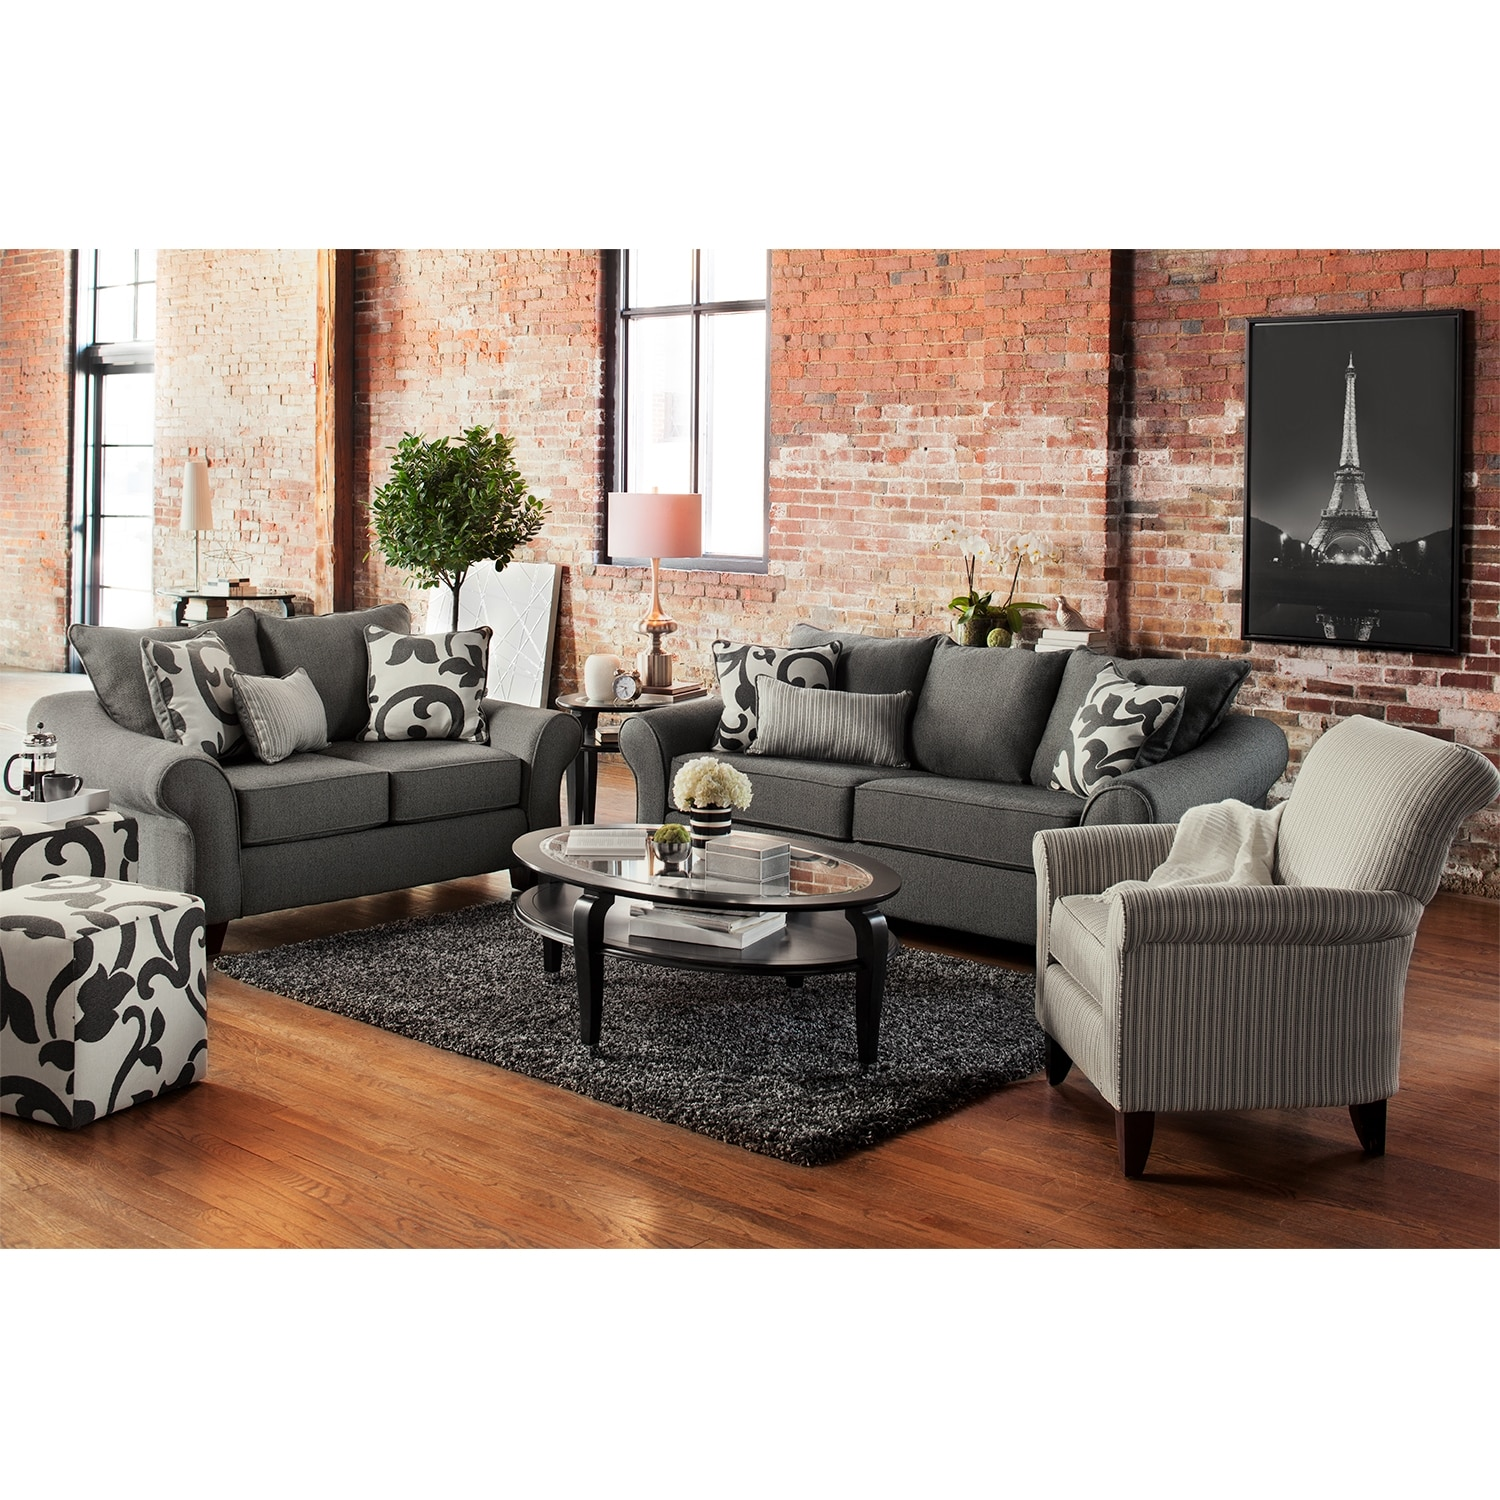 Colette sofa gray value city furniture for Living room of satoshi review